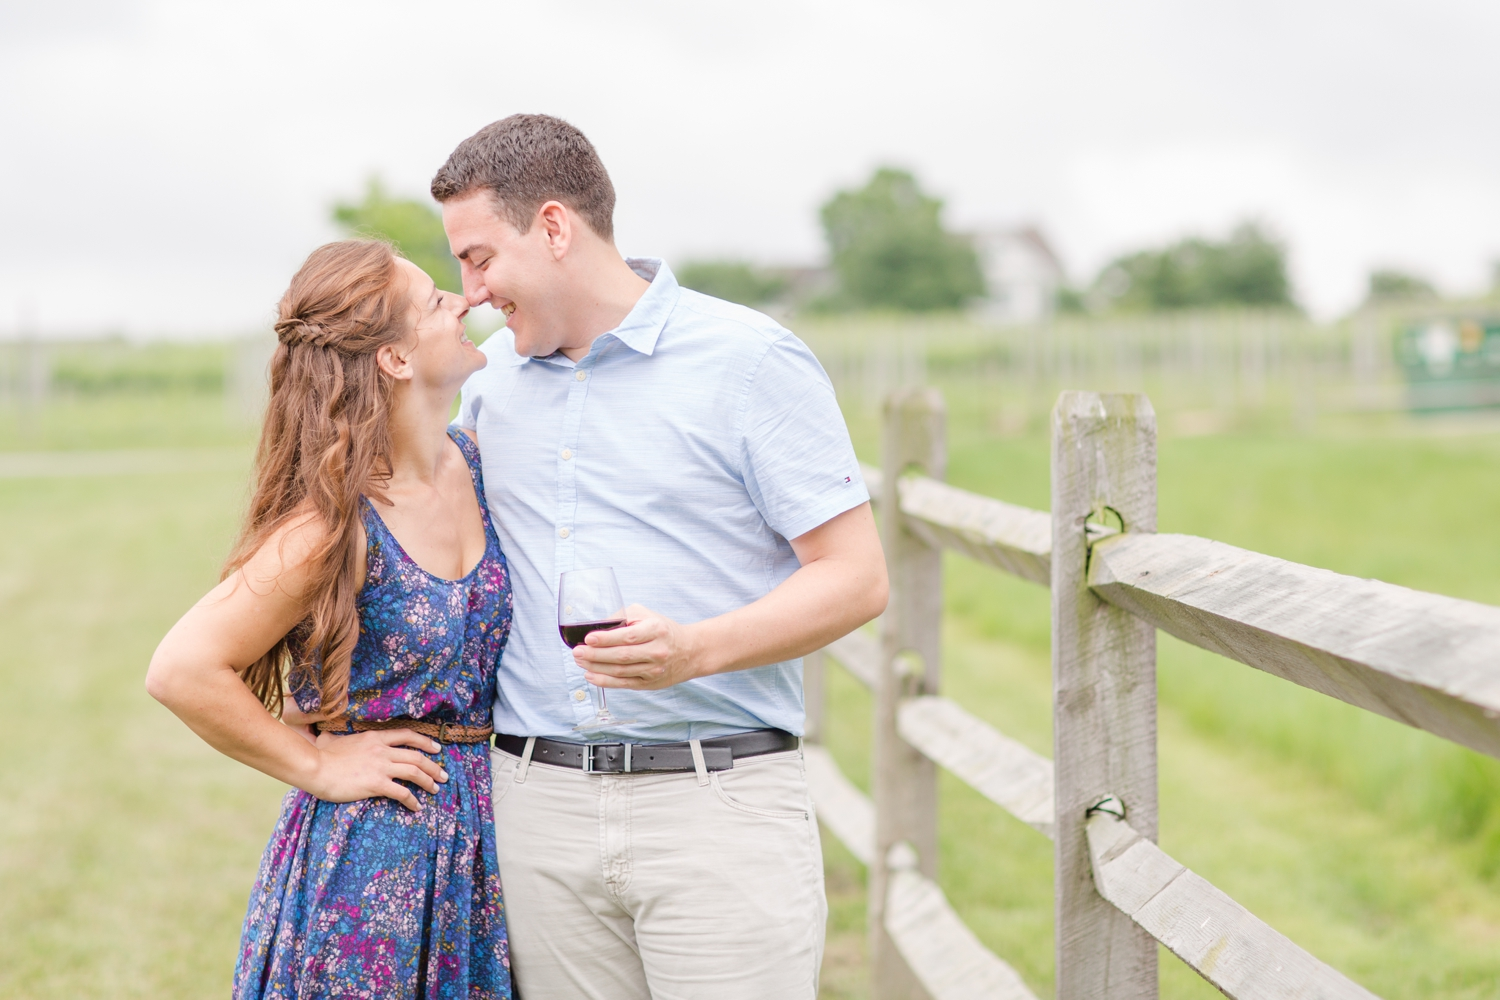 Colin & Kelsey Engagement-44_anna grace photography sunset hills vineyard engagement photography virginia wedding and engagement photographer photo.jpg